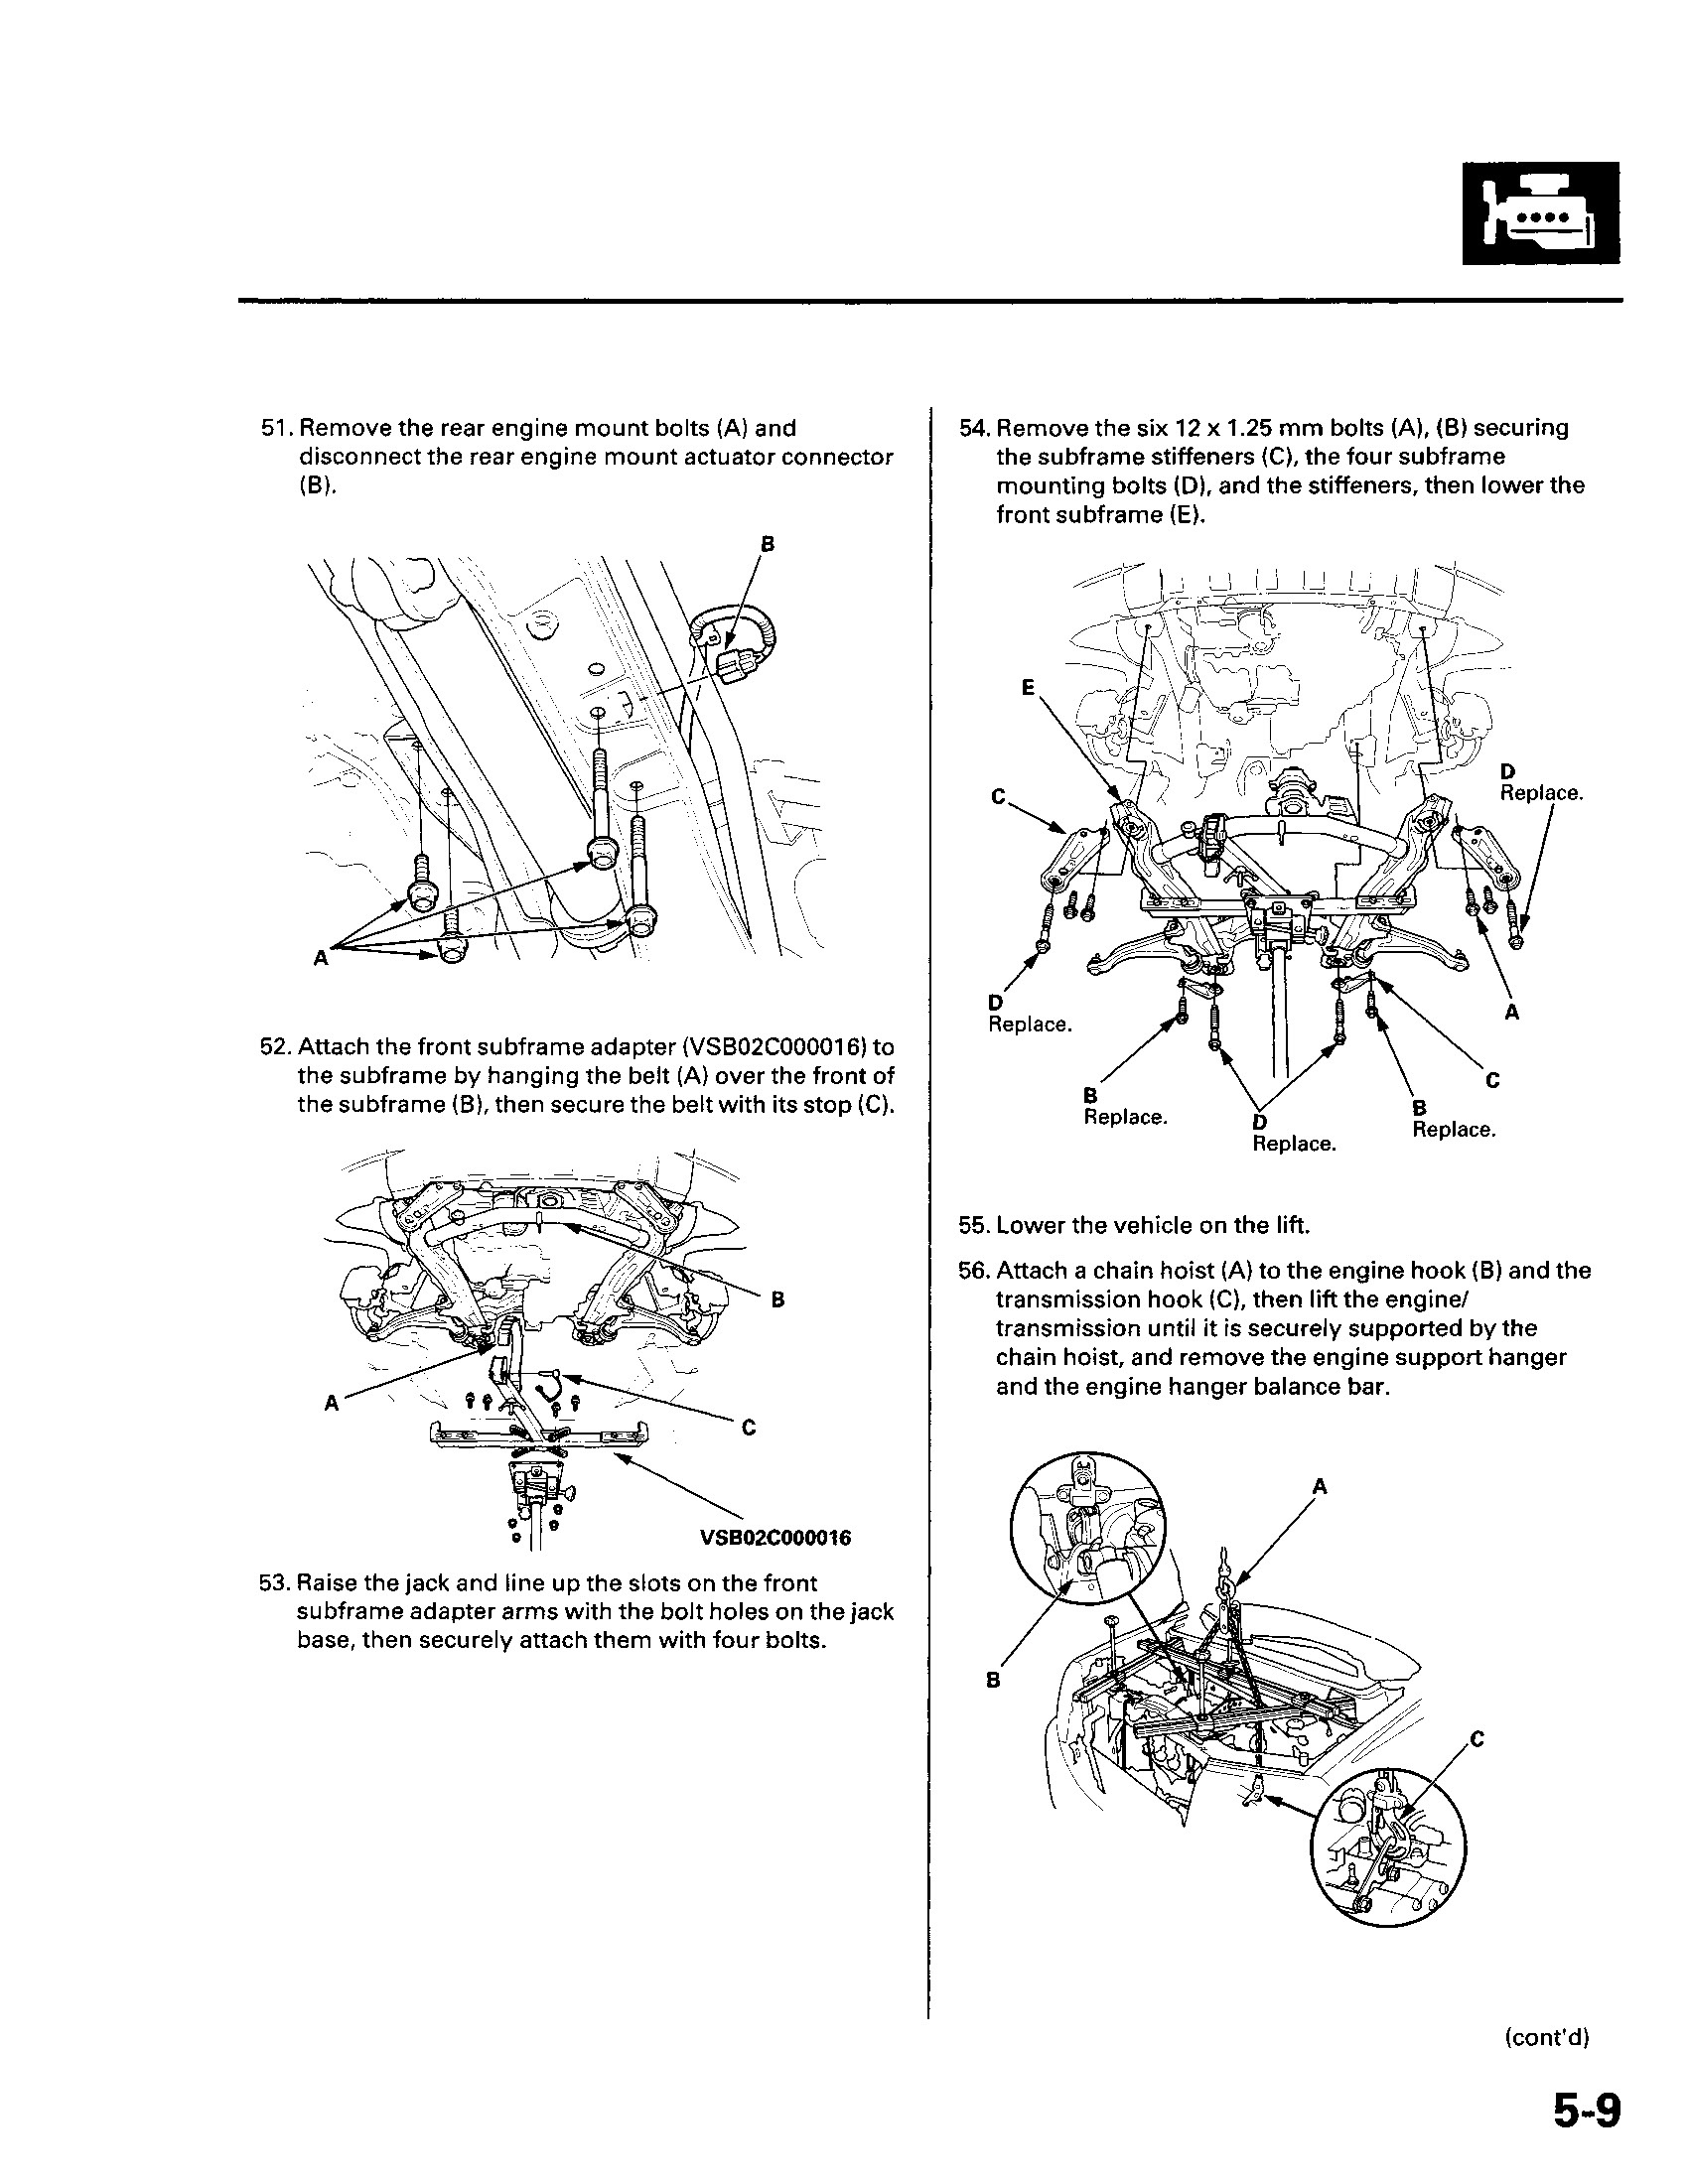 2010 honda pilot engine diagram schematic wiring diagram rh 16 eriop chamas naturatelier de  2007 honda pilot engine parts diagram